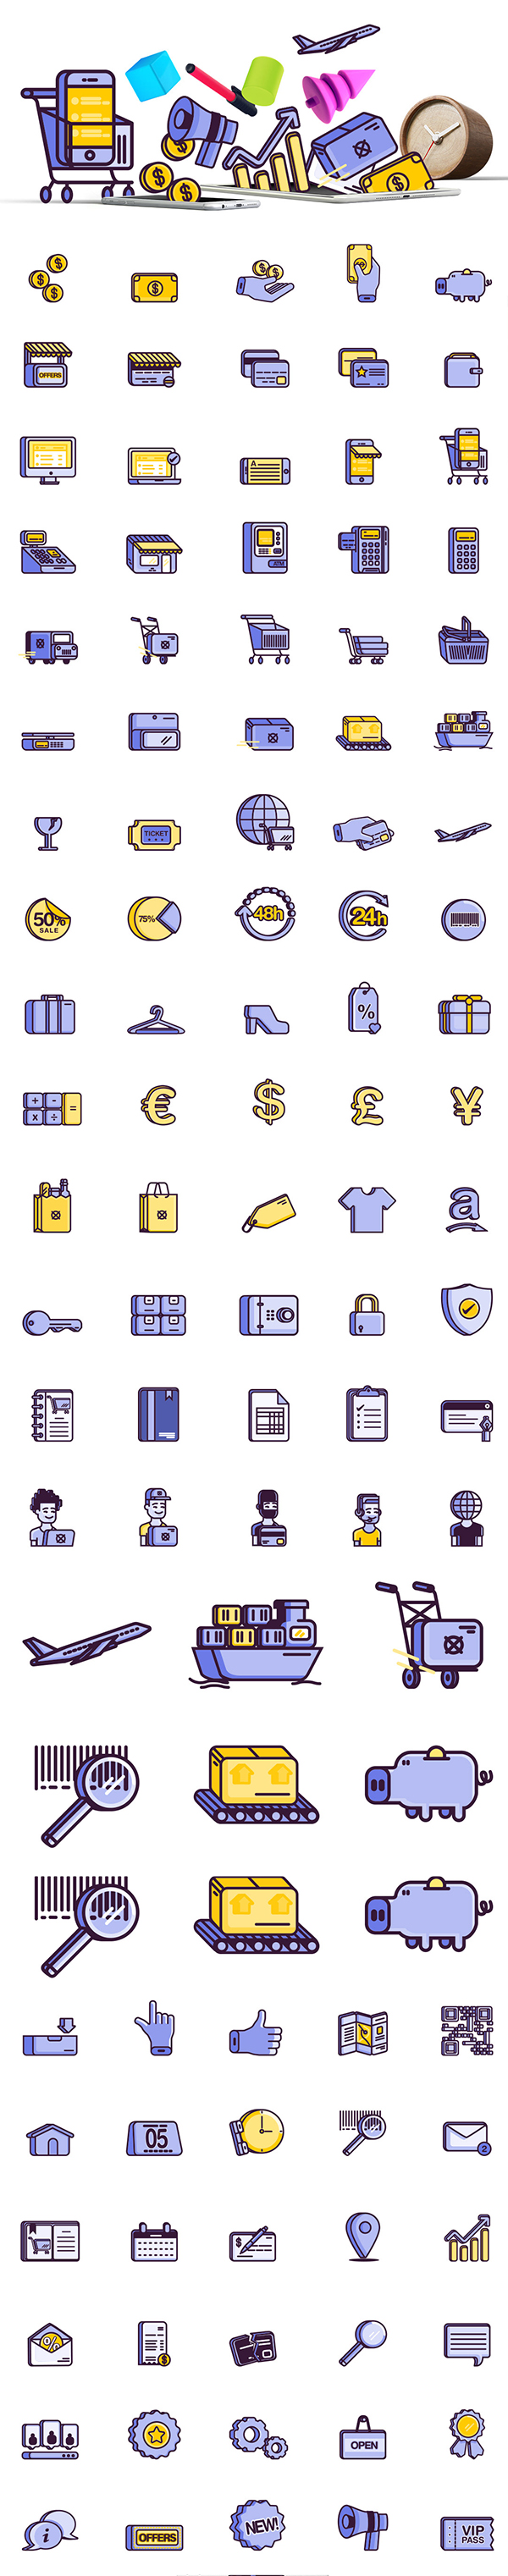 E-commerce 100 Free Icon pack